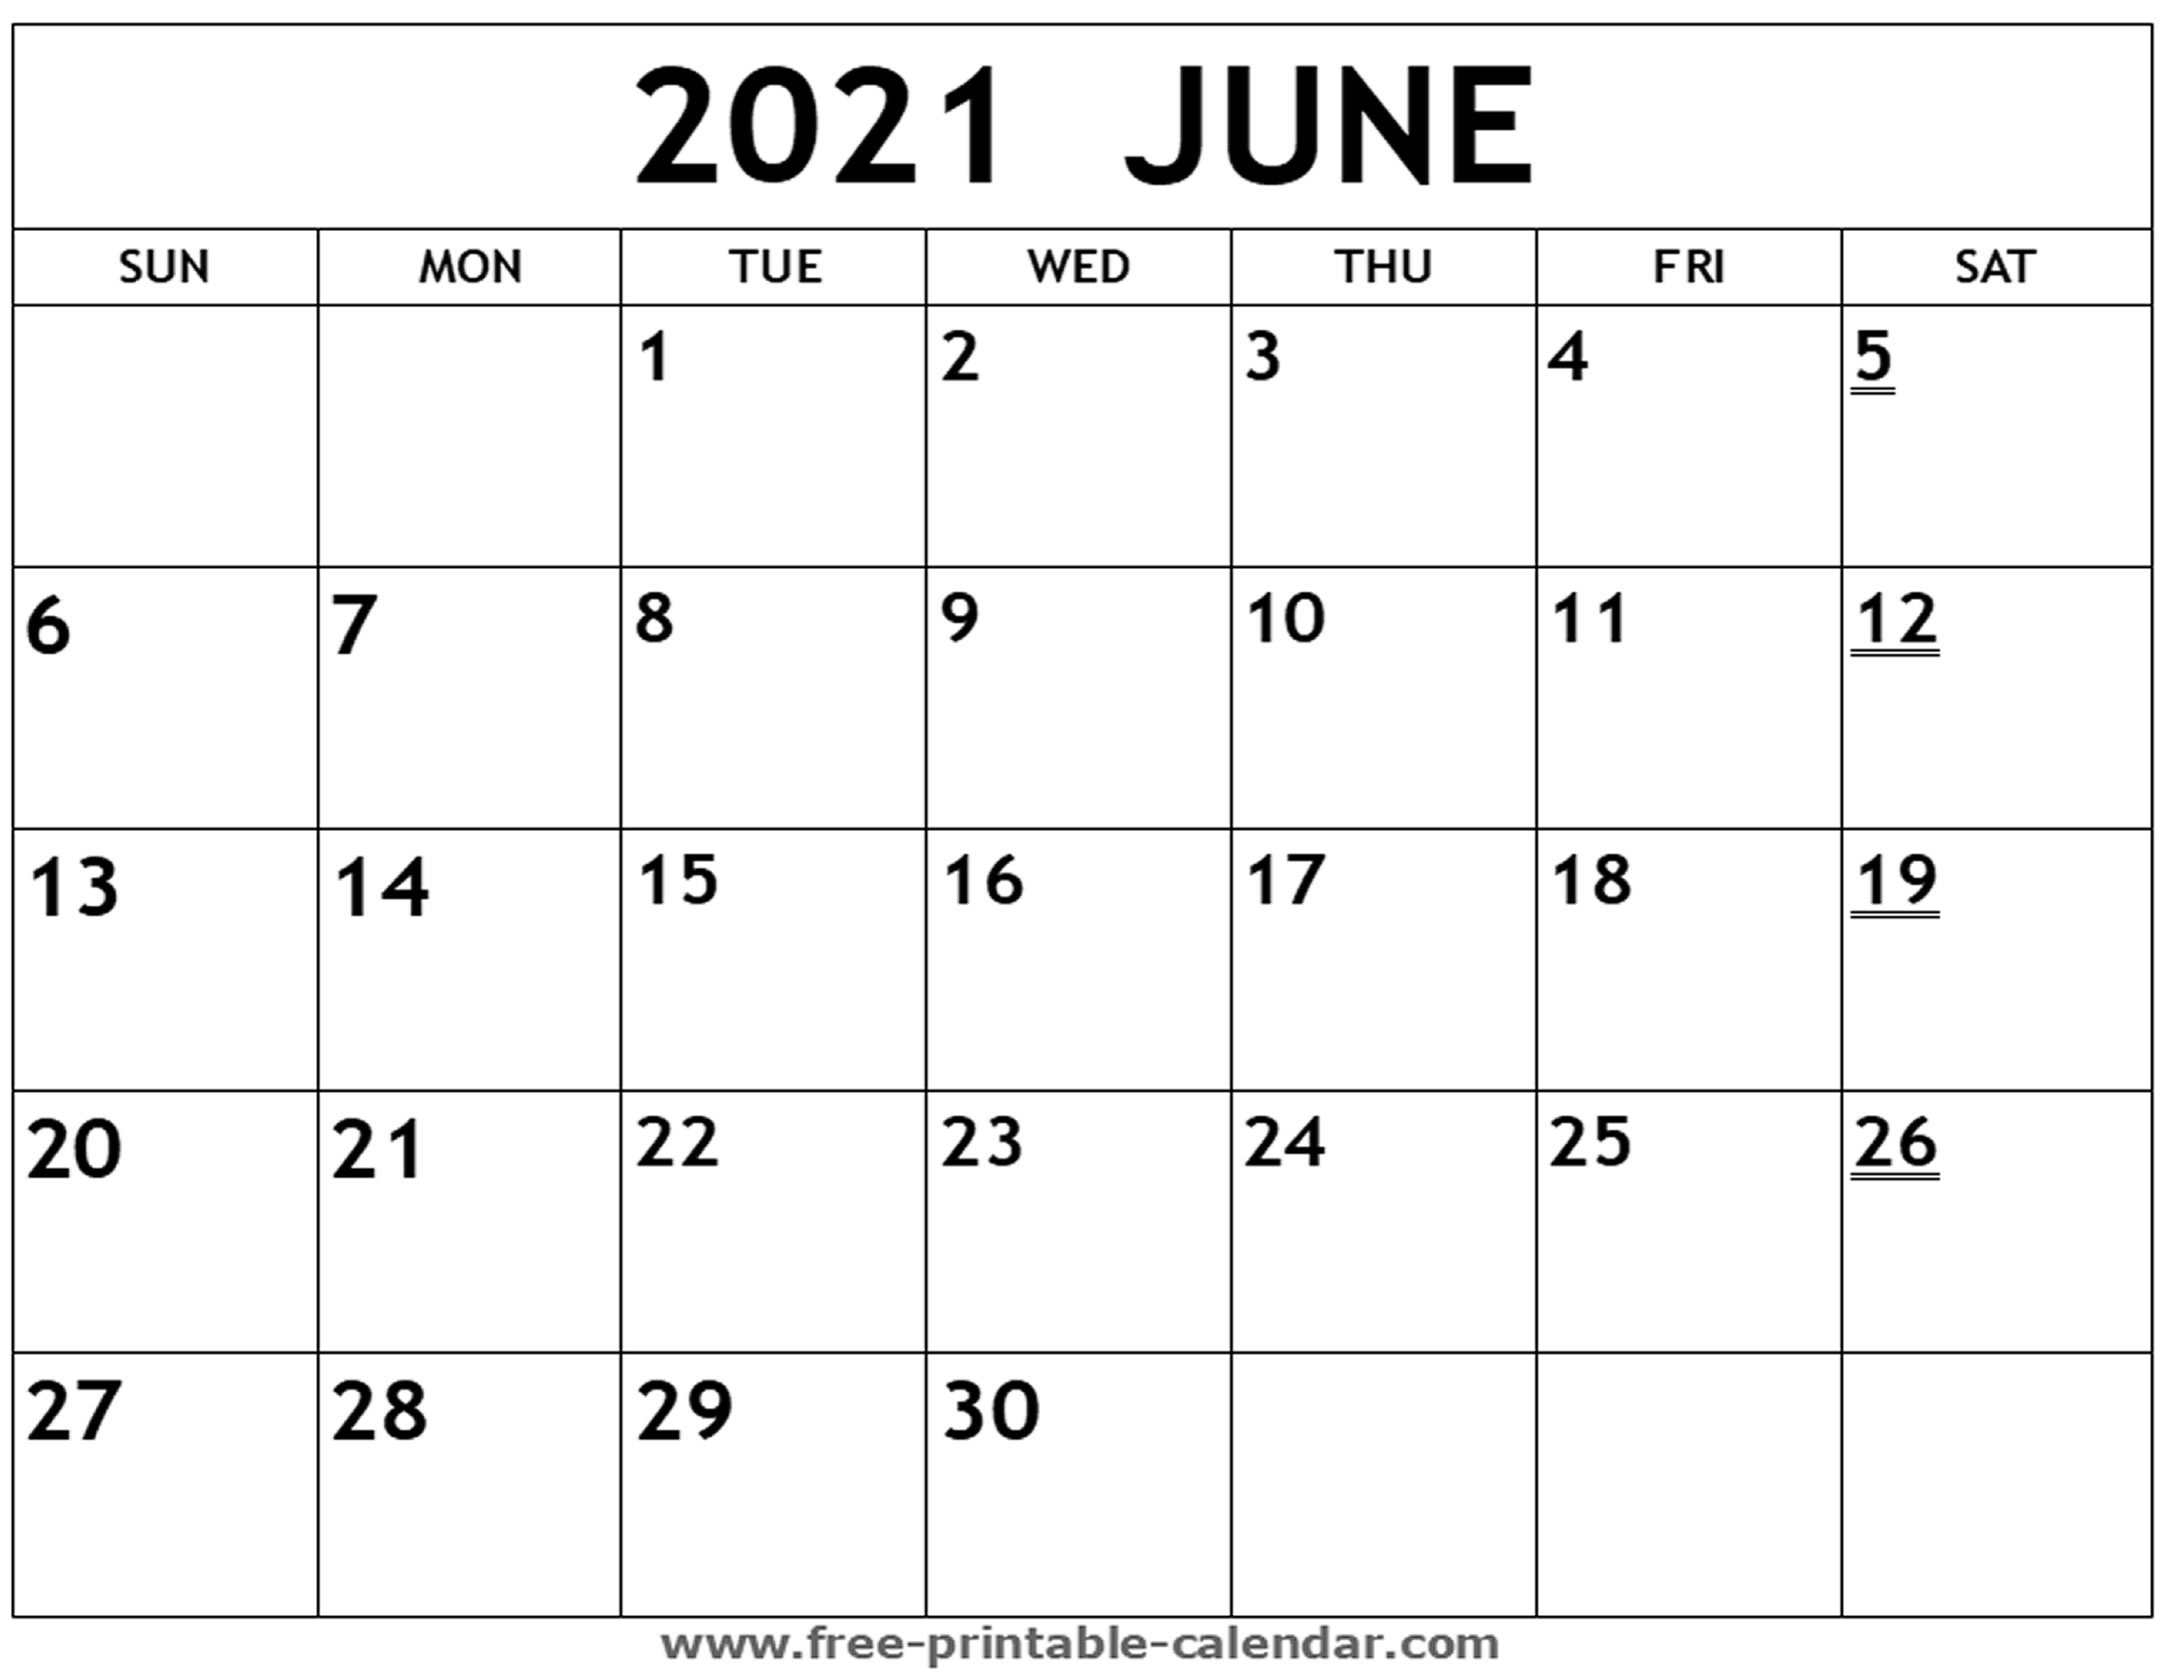 Collect Print Free Calendars Without Downloading 2021